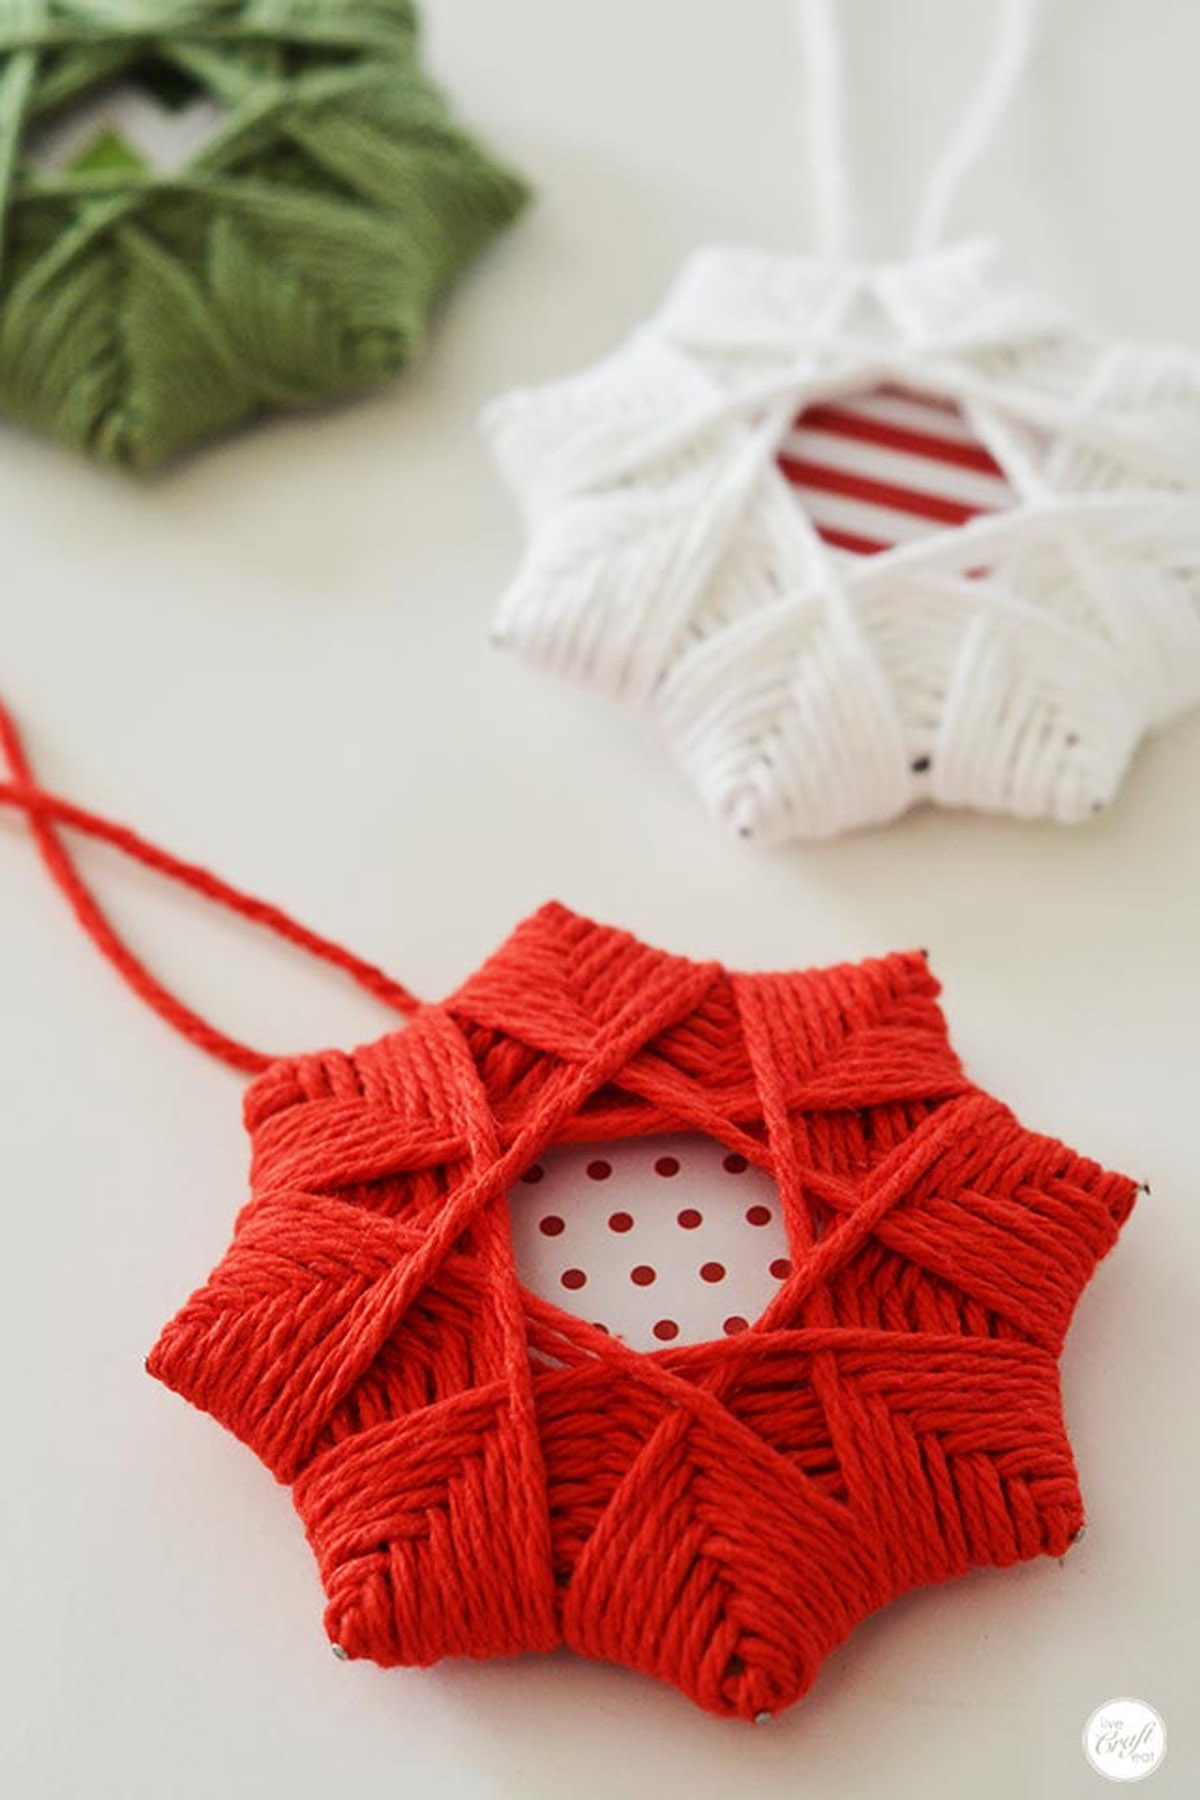 29 Homemade Diy Christmas Ornament Craft Ideas How To